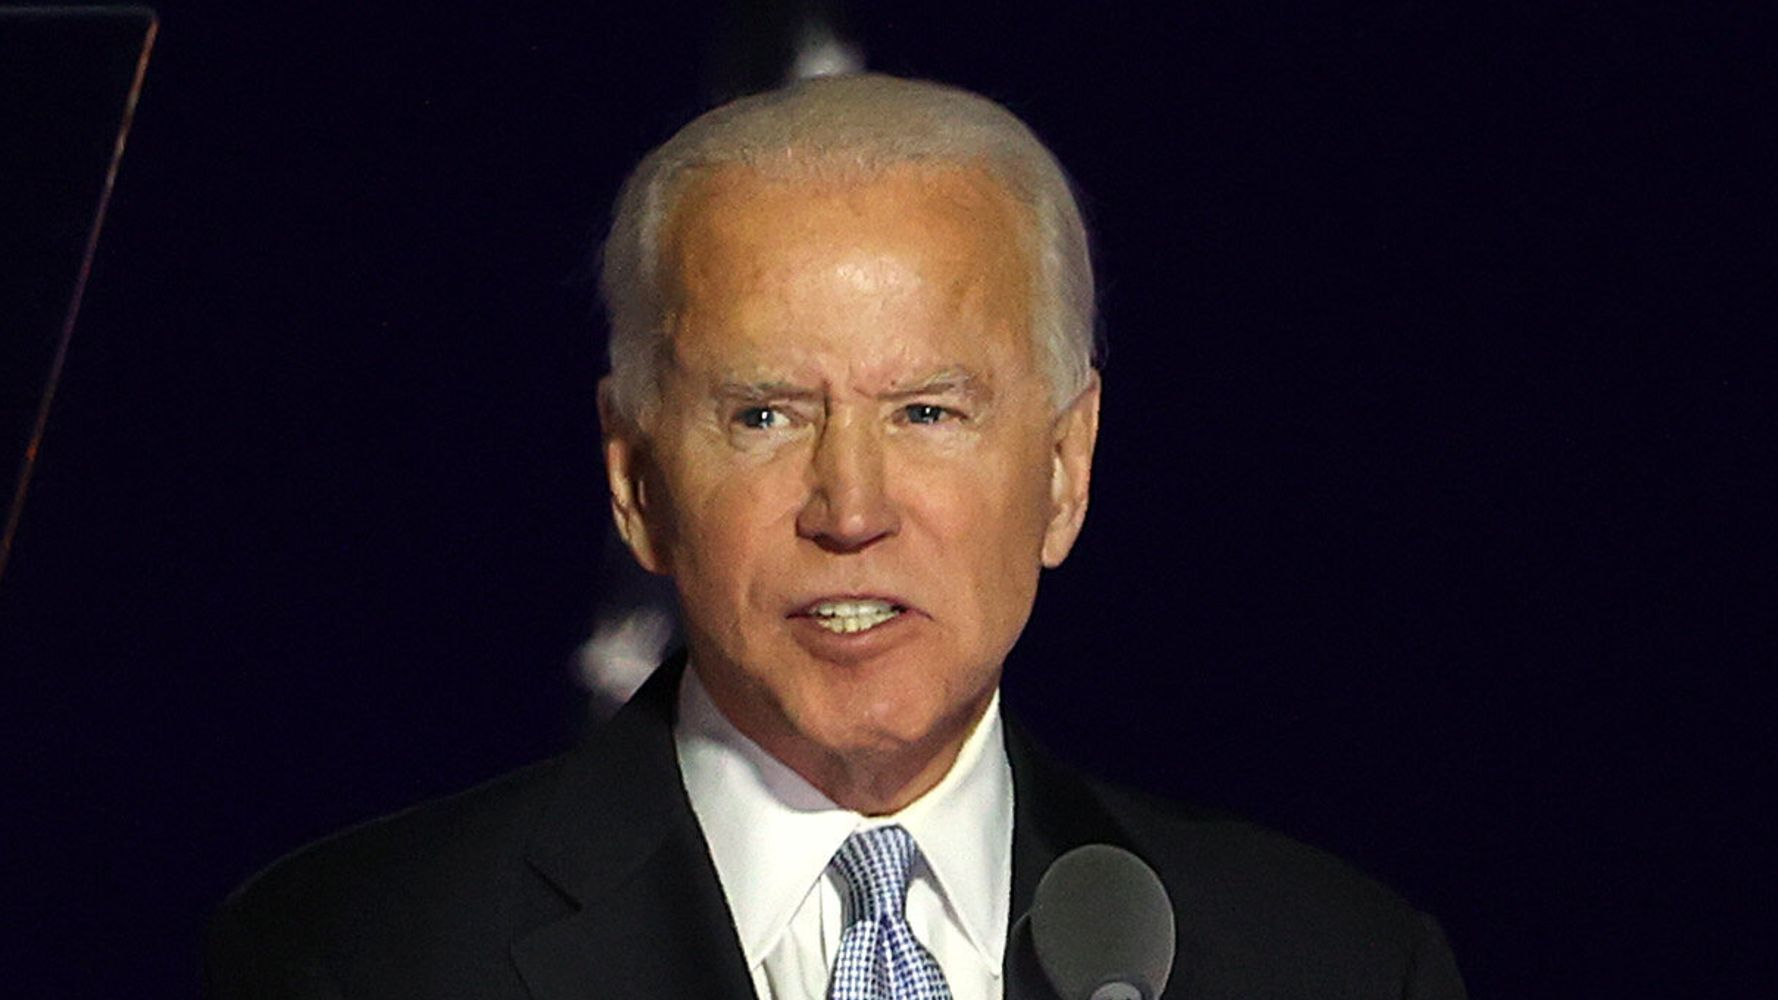 Disability Advocates Express Joy After Biden Name-Checks Them With Important Word